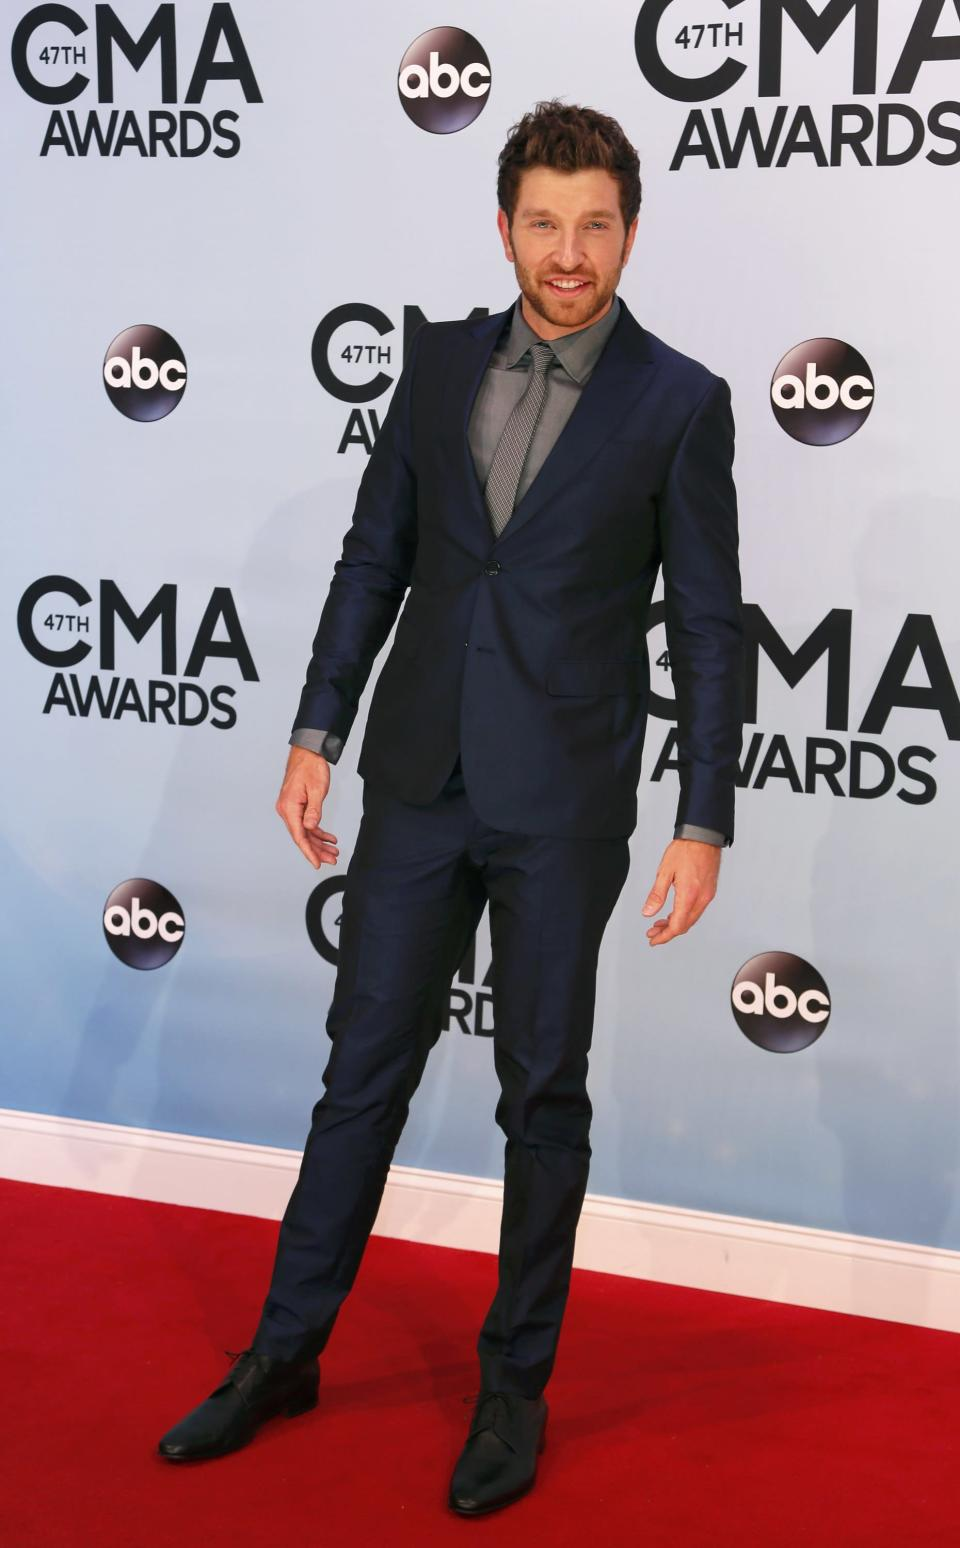 Singer Brett Eldredge arrives at the 47th Country Music Association Awards in Nashville, Tennessee November 6, 2013. REUTERS/Eric Henderson (UNITED STATES - Tags: ENTERTAINMENT)